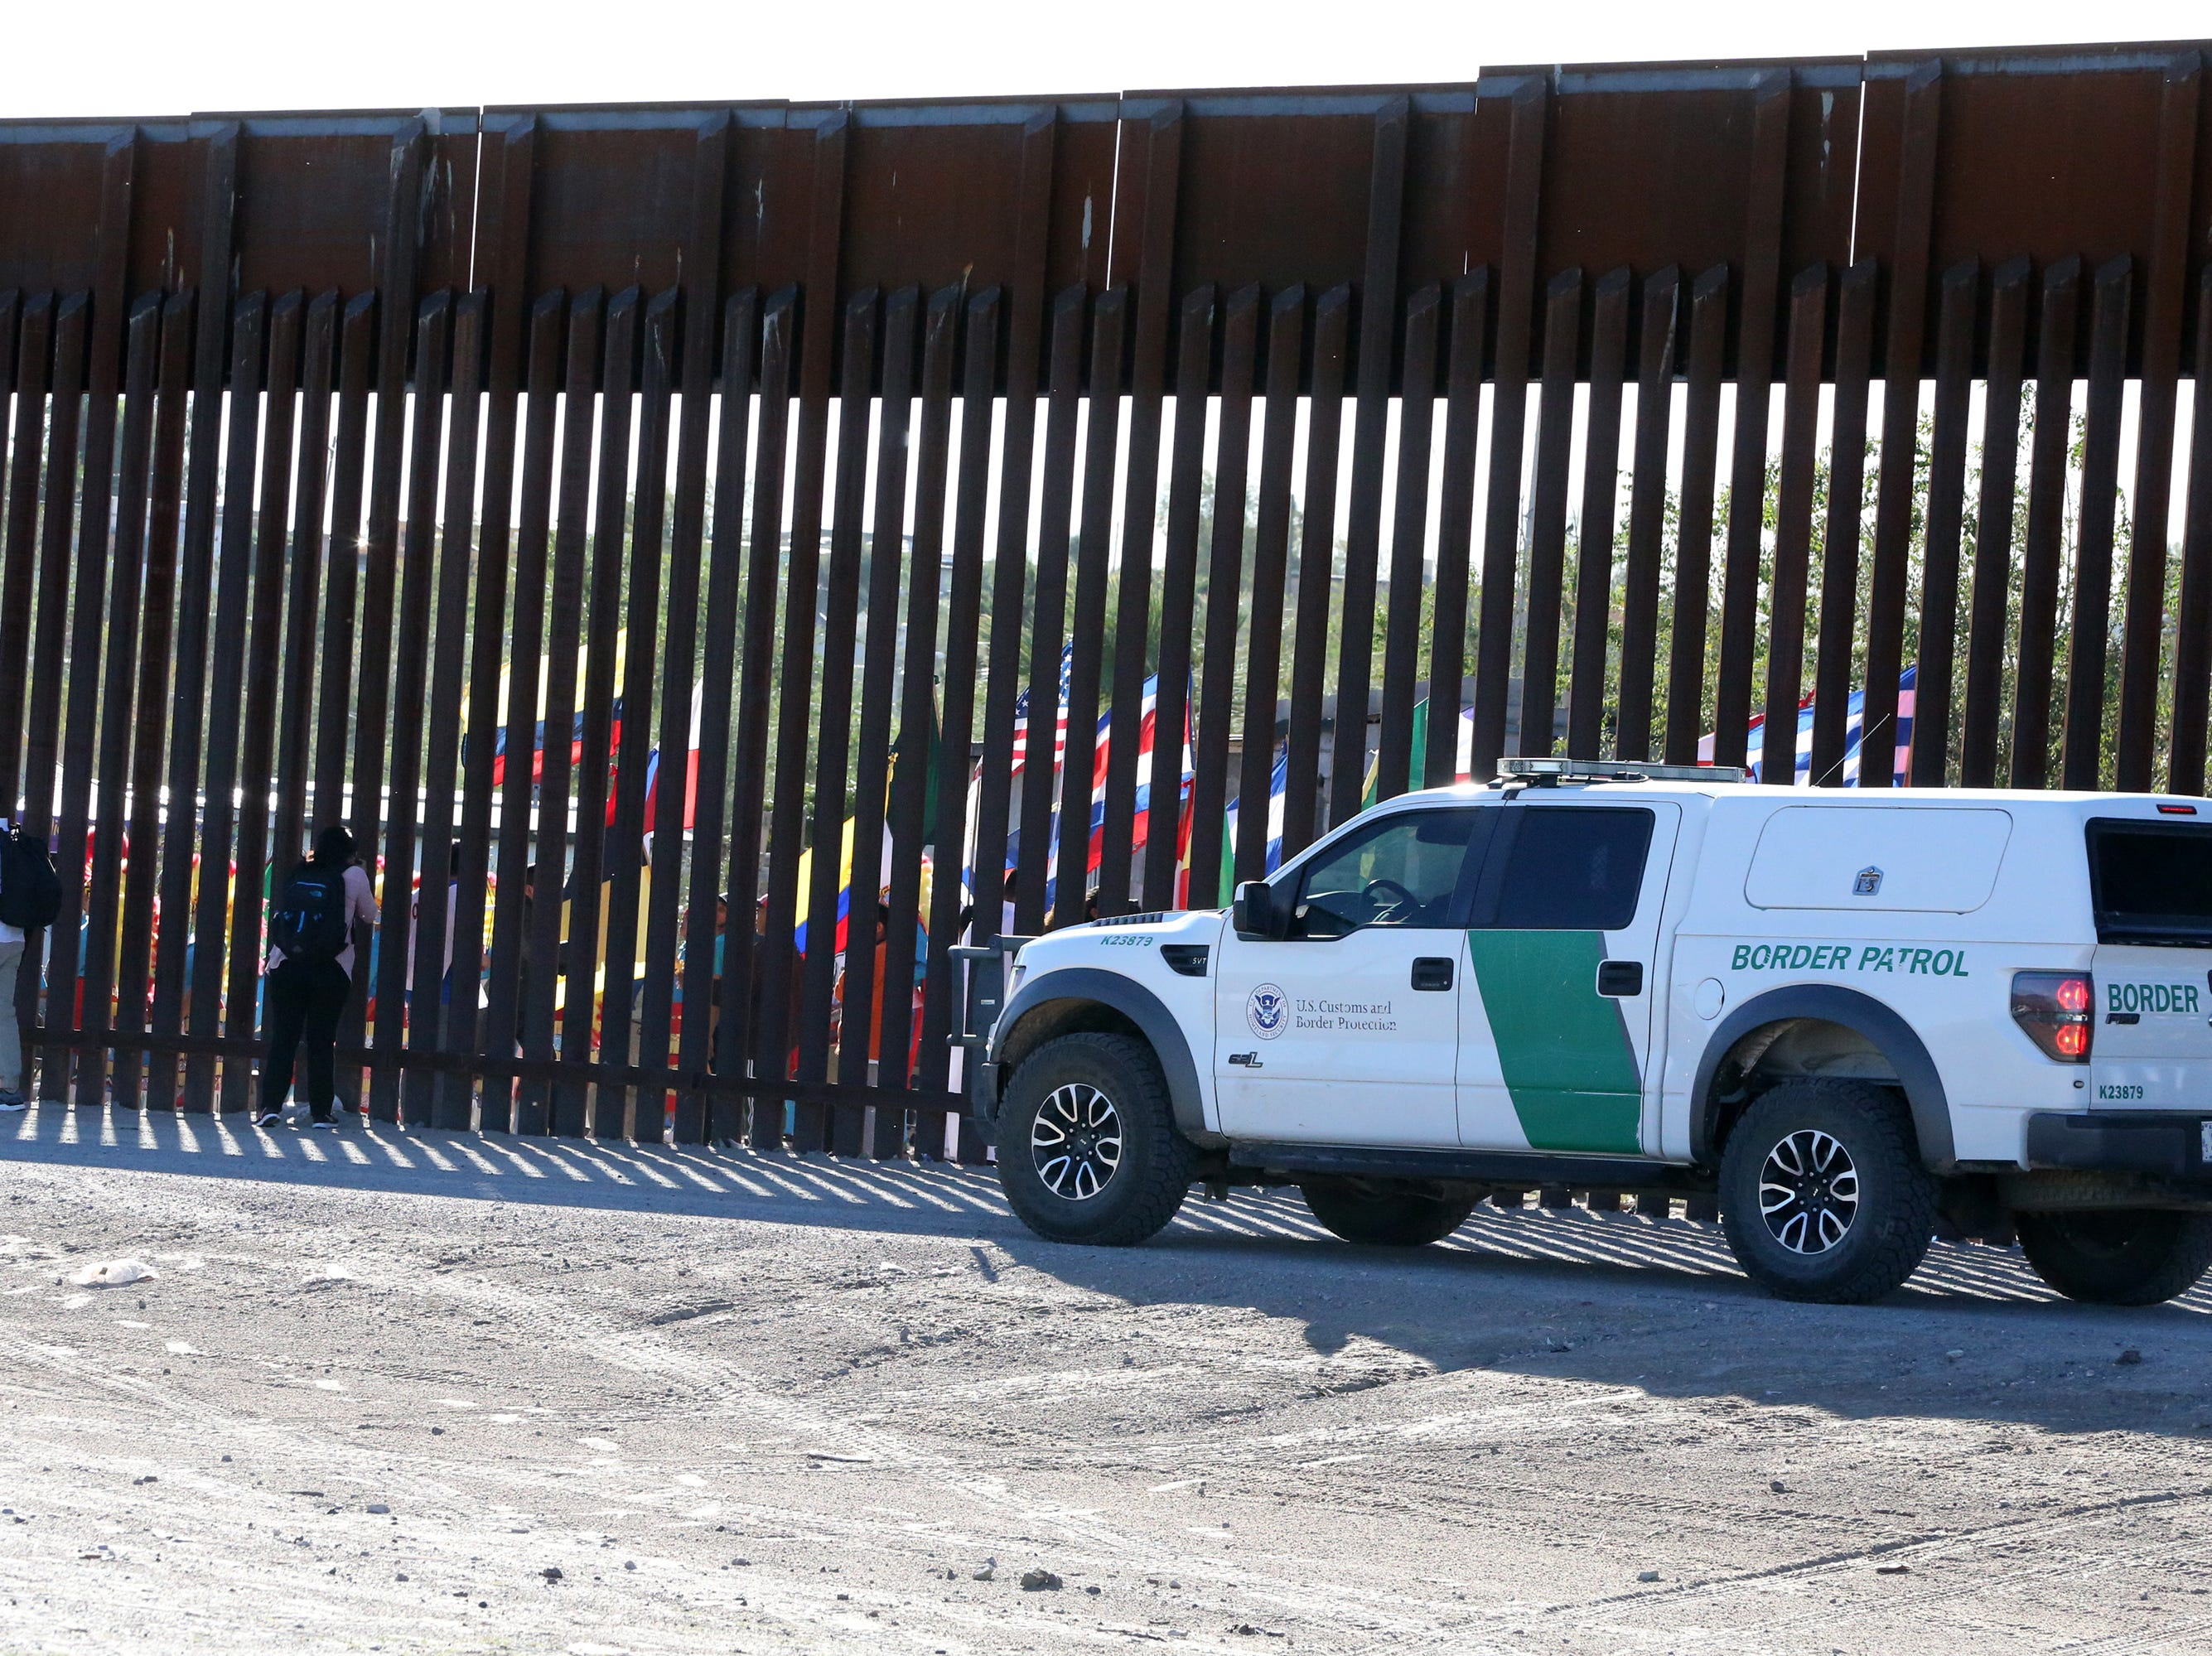 A U.S. Border Patrol vehicle at the border fence Saturday.